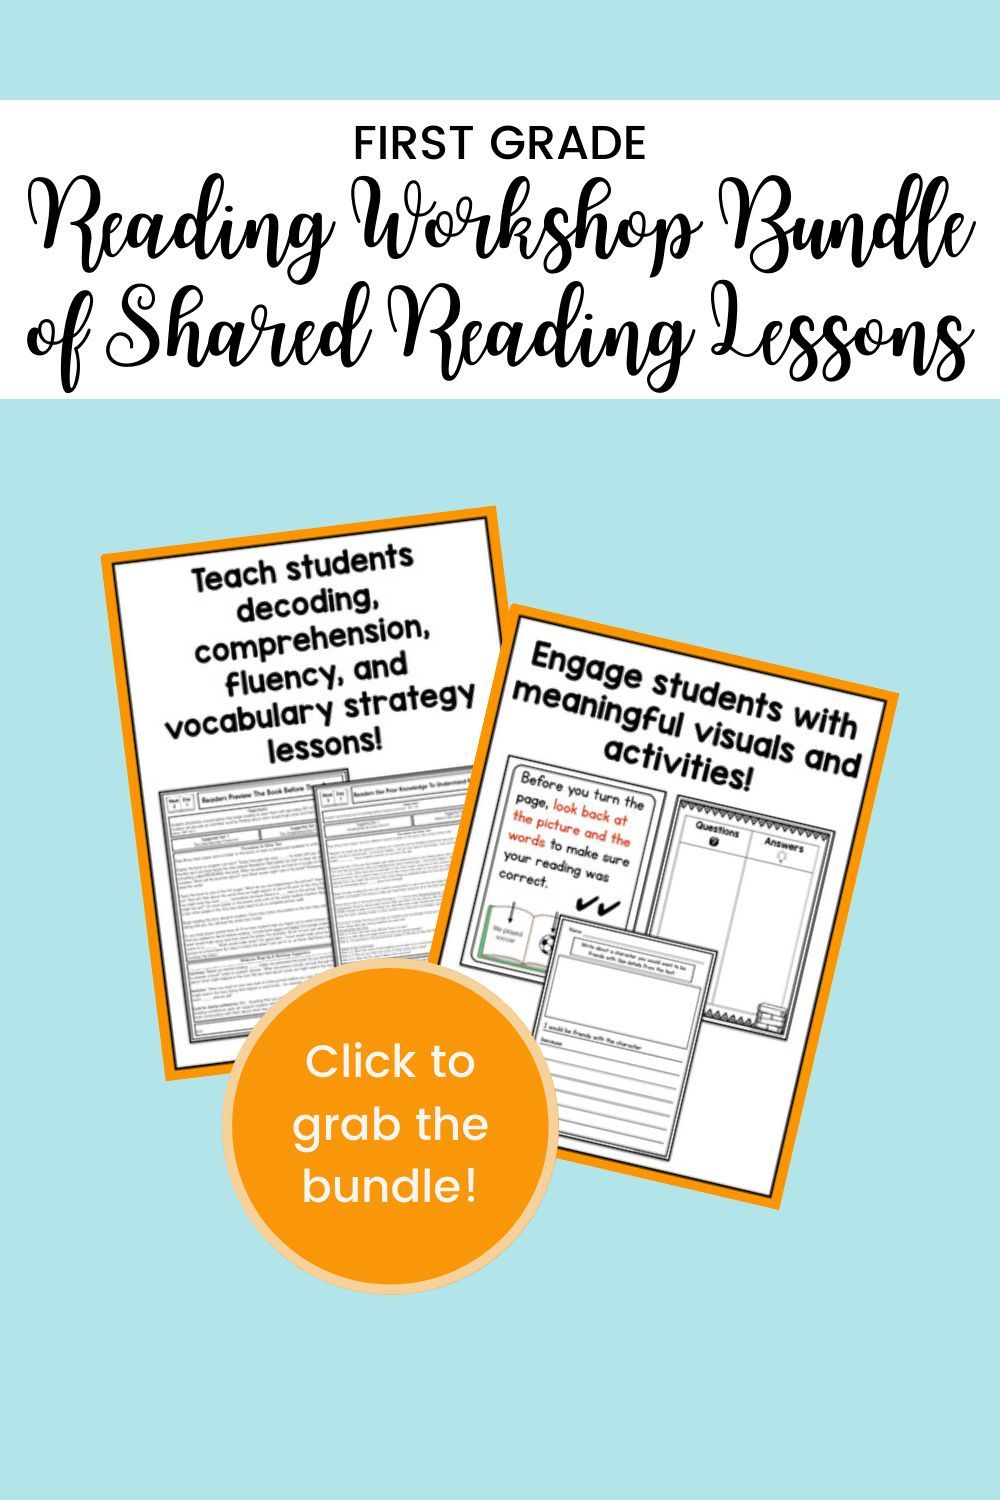 First Grade Flexible Shared Reading Lessons In 2021 Shared Reading Lesson Reading Lessons Reading Fluency Activities Fun reading lesson plans for grade